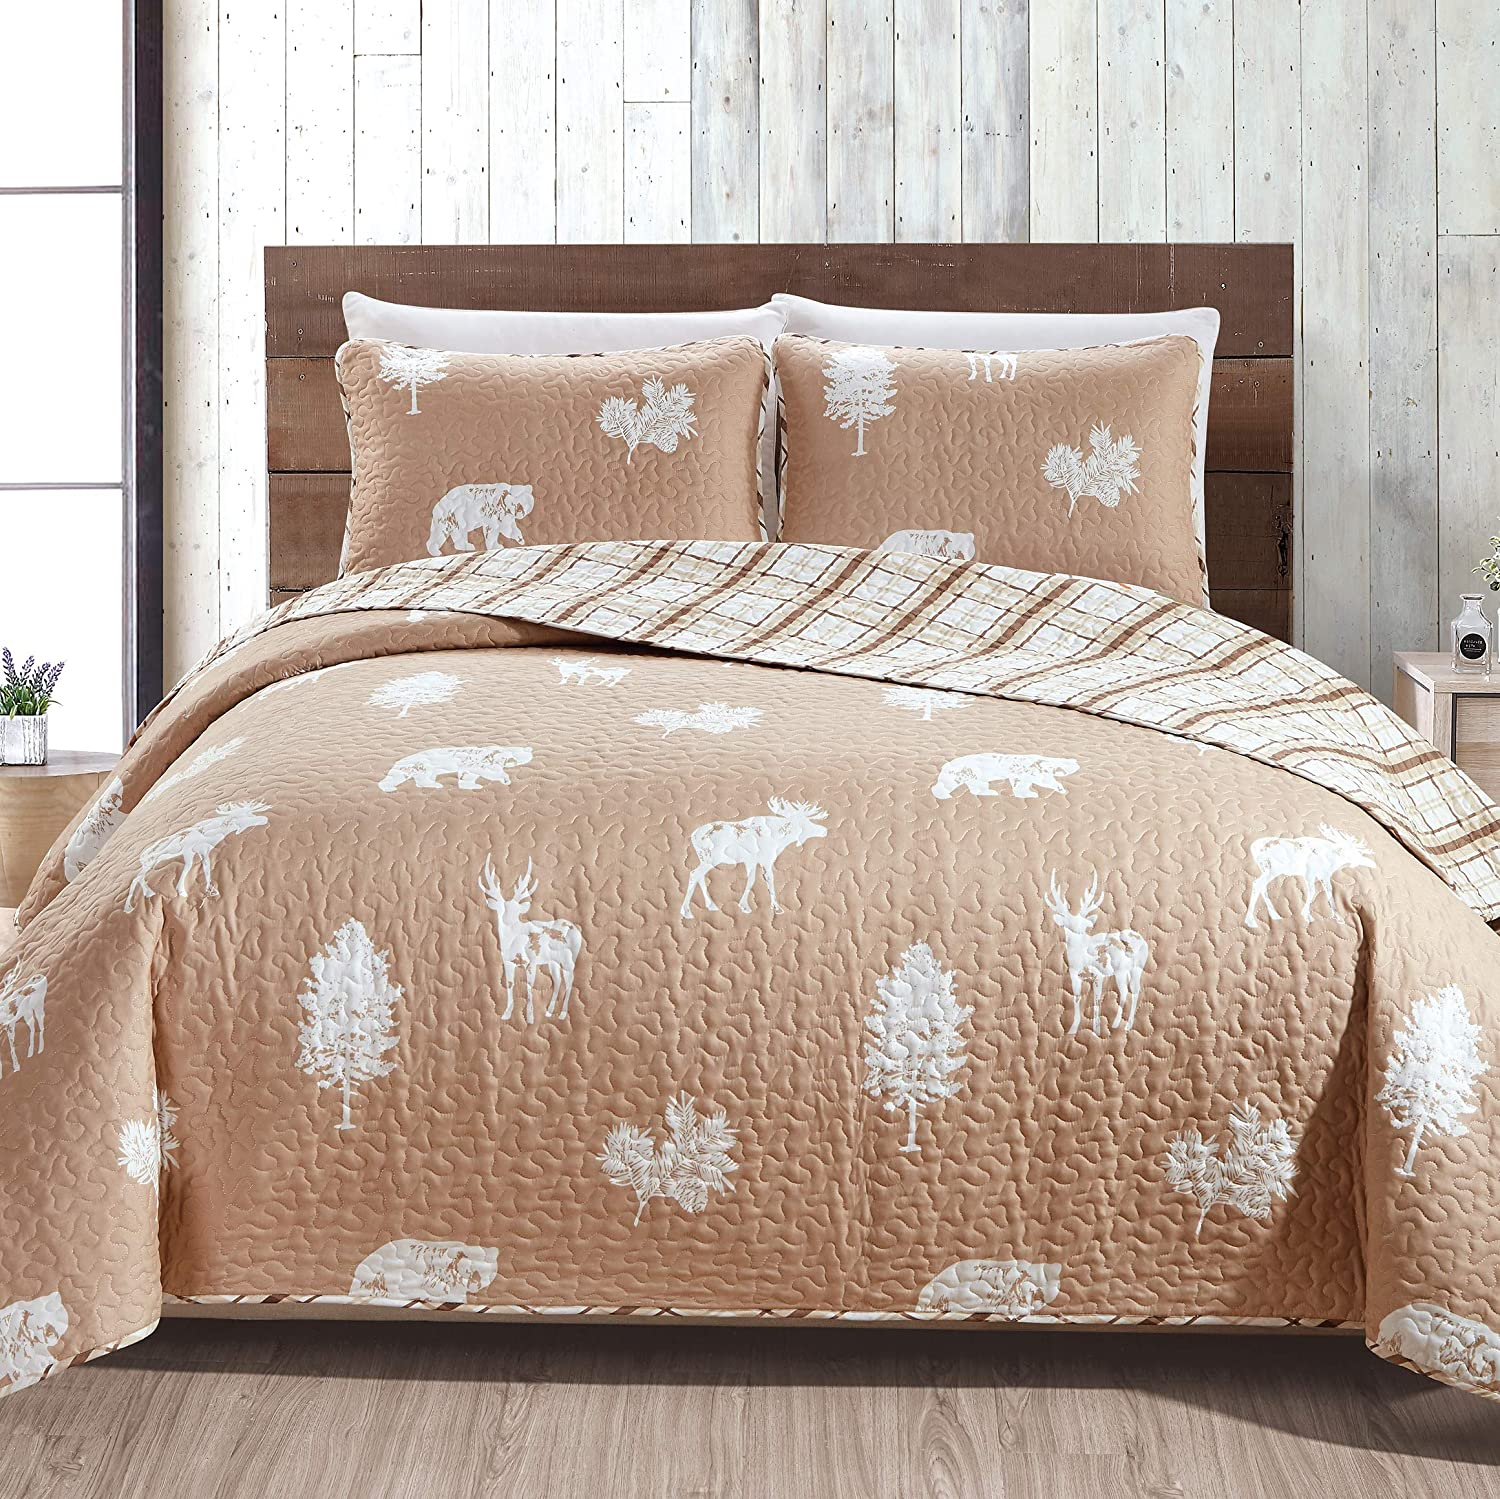 Great Bay Home Lodge Bedspread King Size Quilt with 2 Shams. Cabin 3- Piece Reversible All Season Quilt Set. Rustic Quilt Coverlet Bed Set. Rio Ridge Collection (Taupe)